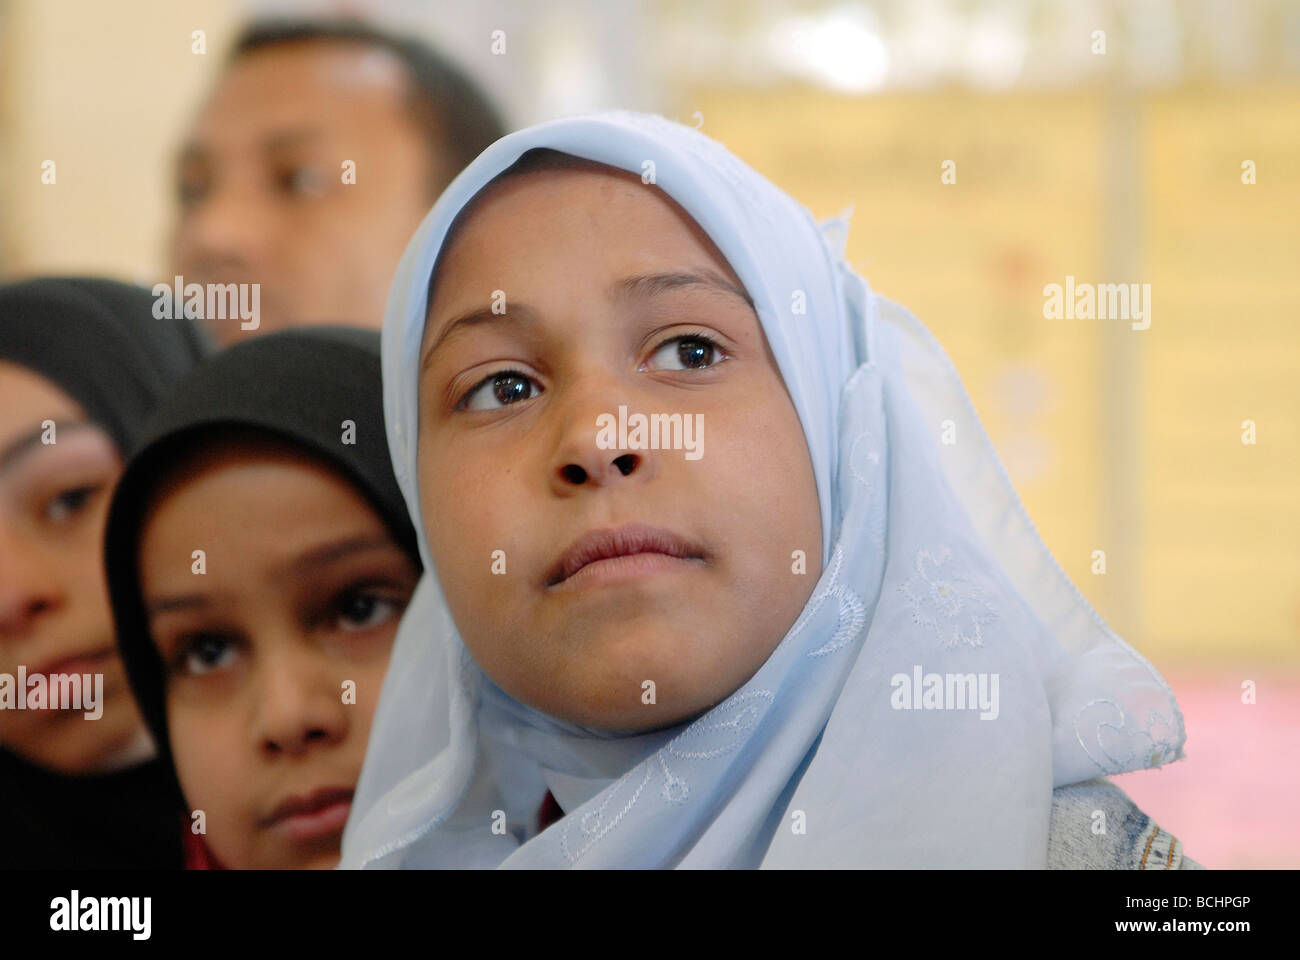 Portrait of a veiled girls at a school in Sohag, Upper Egypt - Stock Image